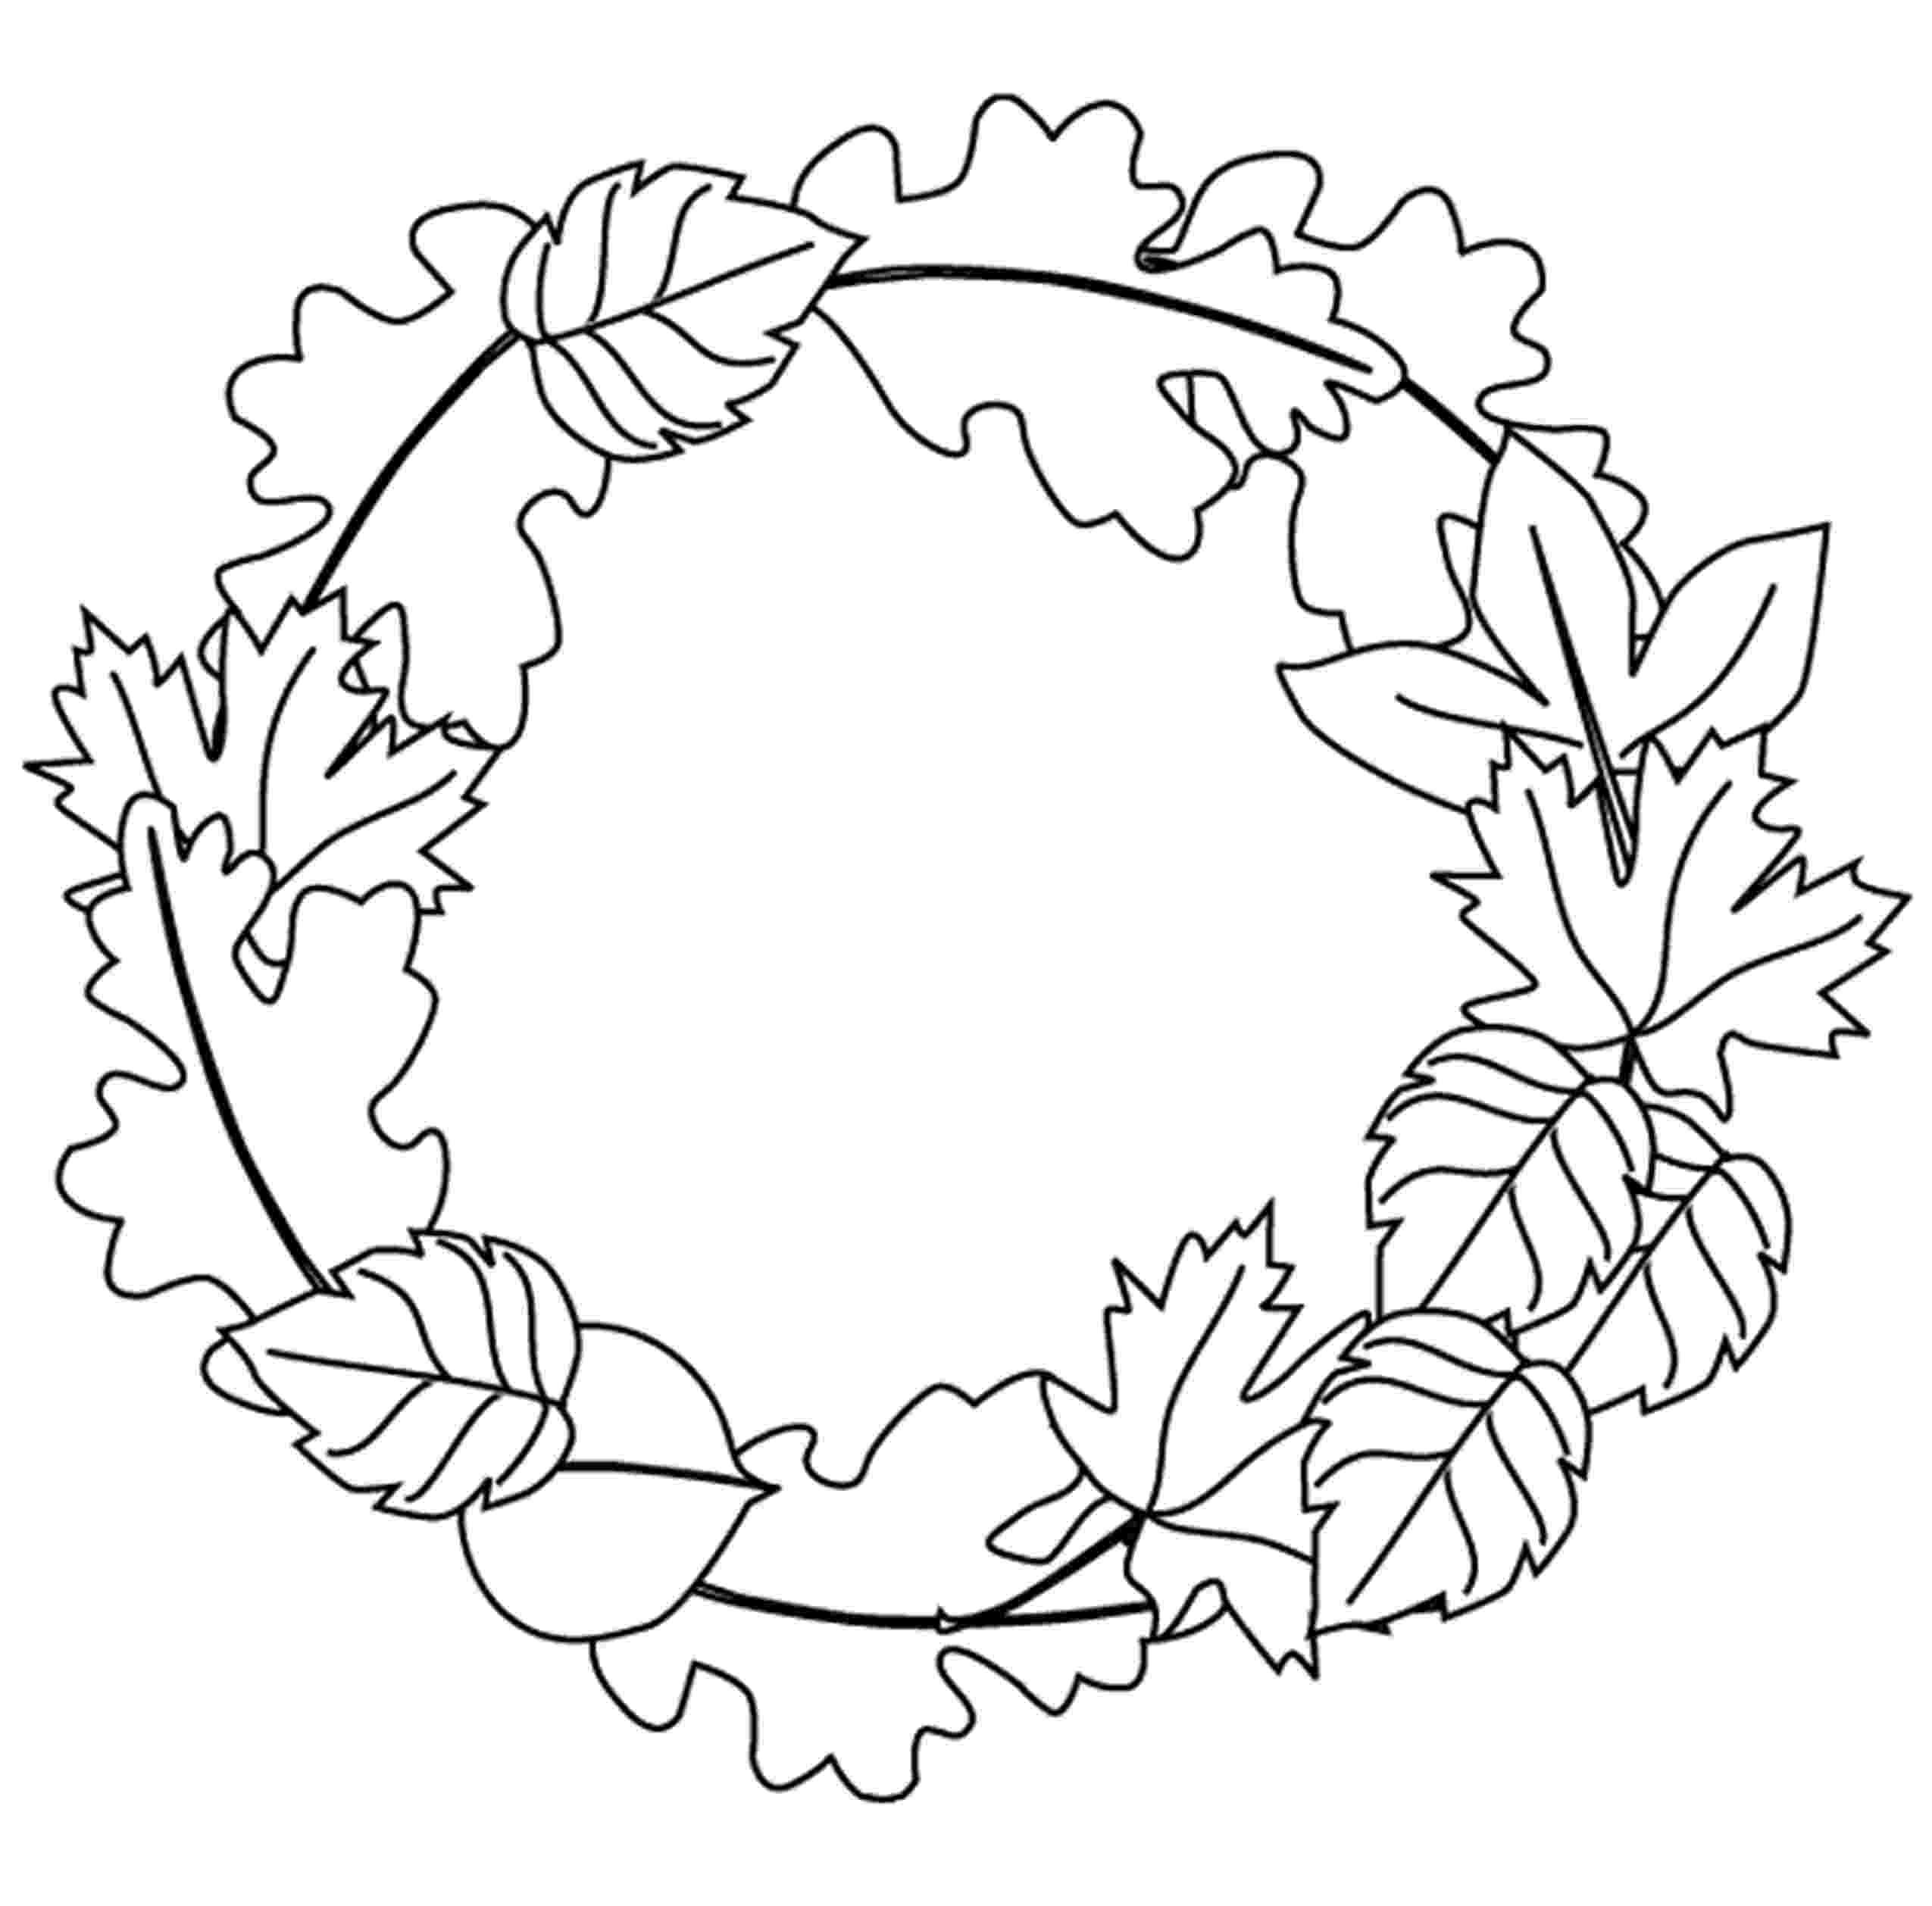 autumn leaves coloring pages autumn leaves coloring pages getcoloringpagescom leaves coloring pages autumn